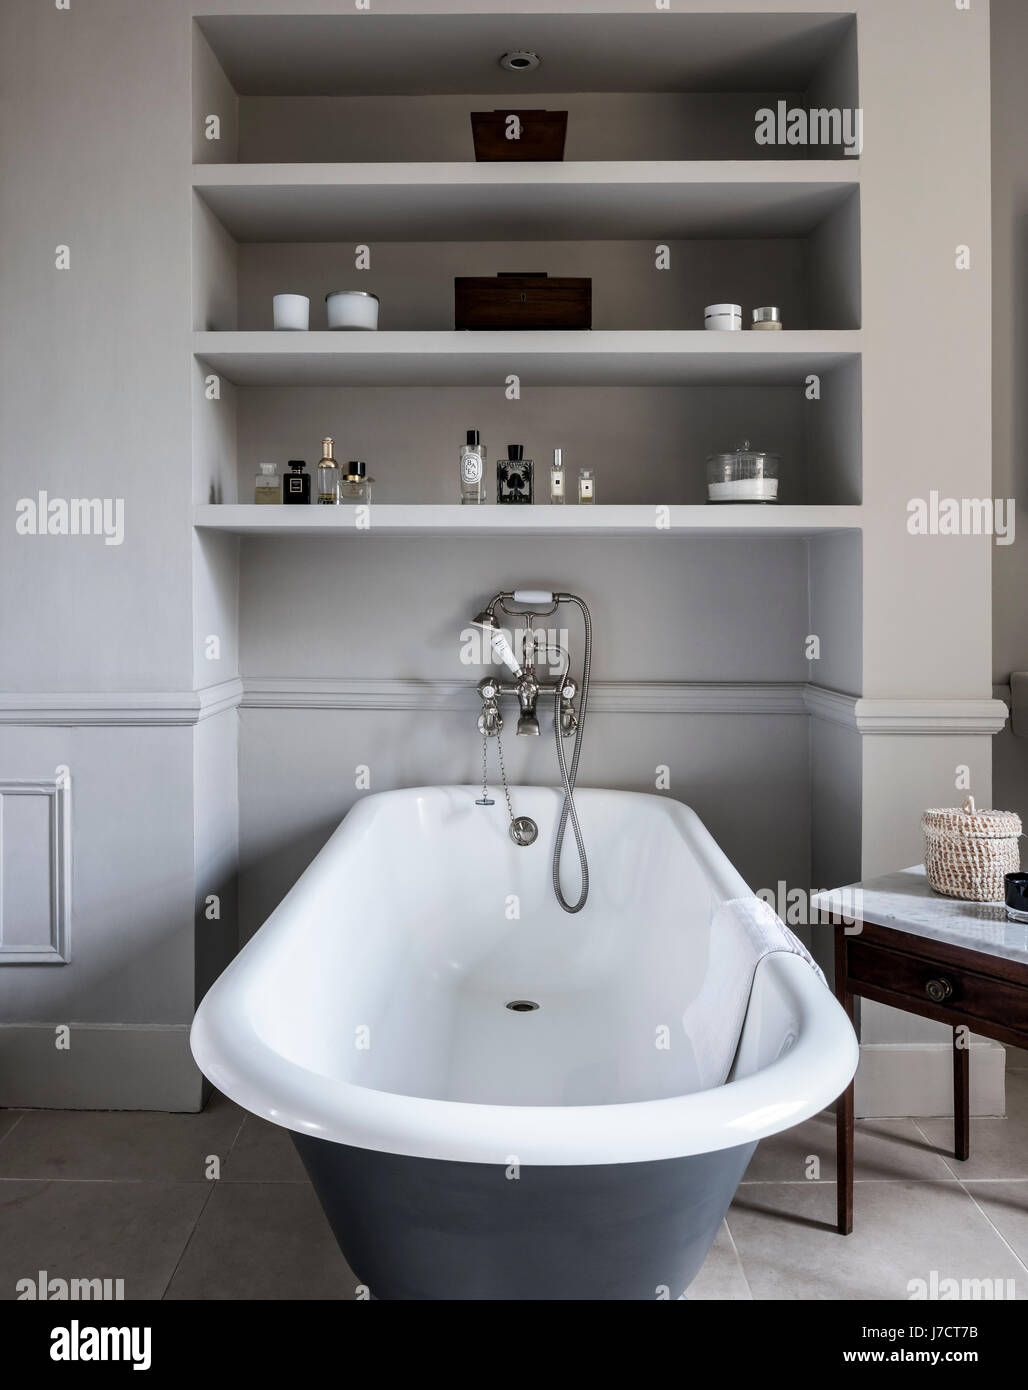 Free-standing roll top bath from Albion in bathroom with antique ...